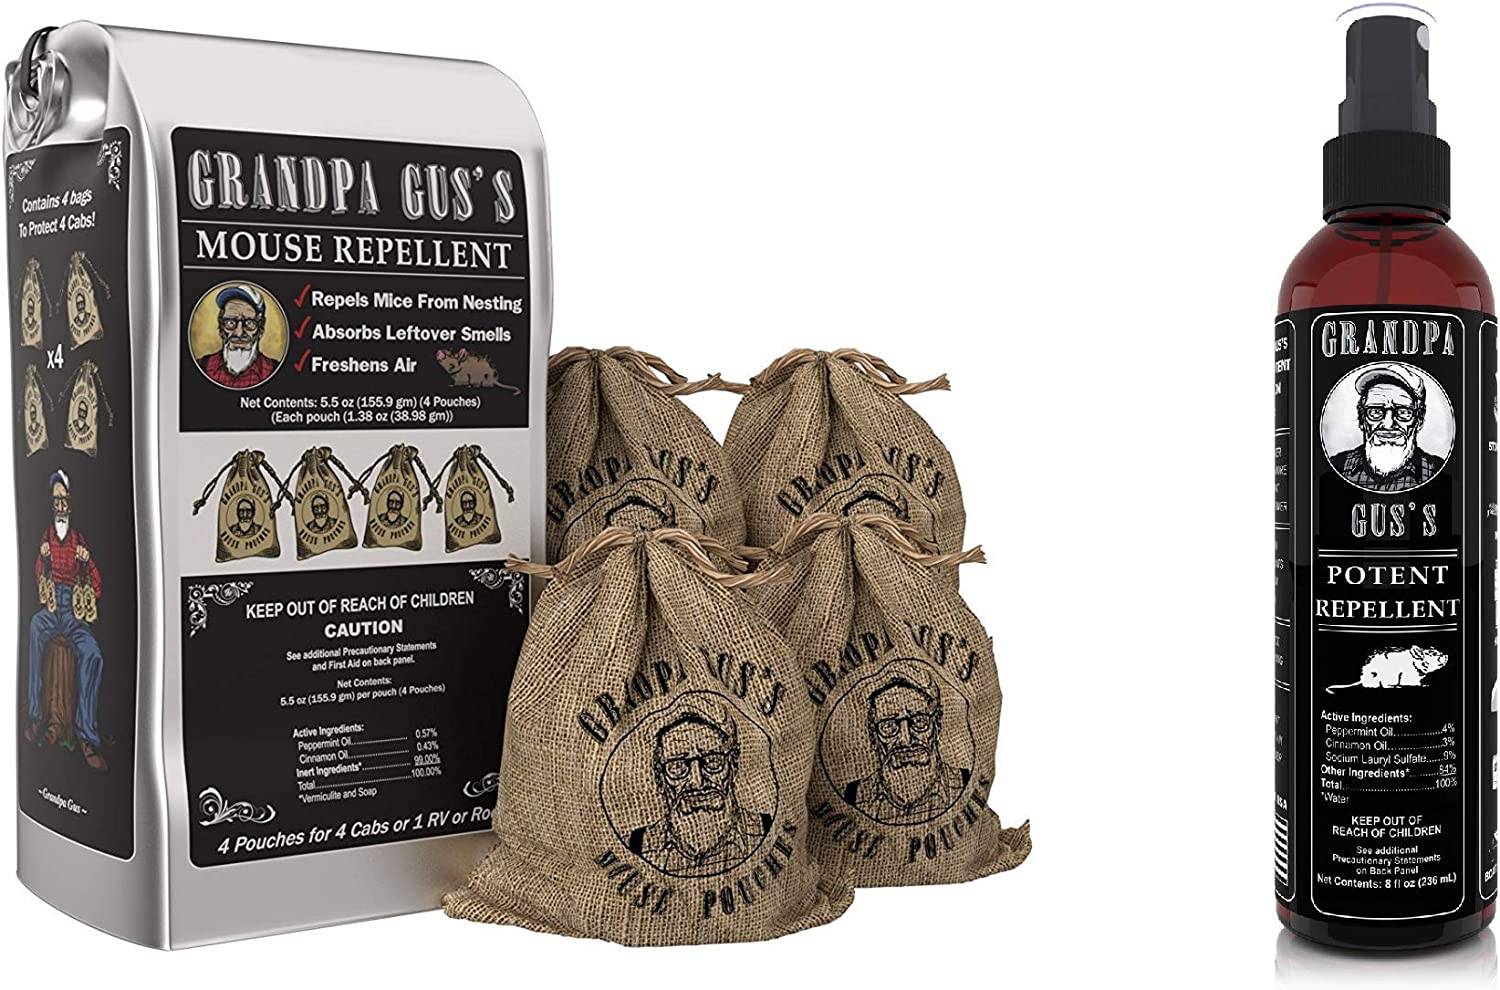 Grandpa Gus's Mouse Repellent Pouches + Potent Mouse Repellent Spray, Made with Peppermint/Cinnamon Oils, Protects Home/RV, Boat/Car Storage & Machinery, 4x1.38oz Burlap Pouches & 1x8oz Bottle Spray